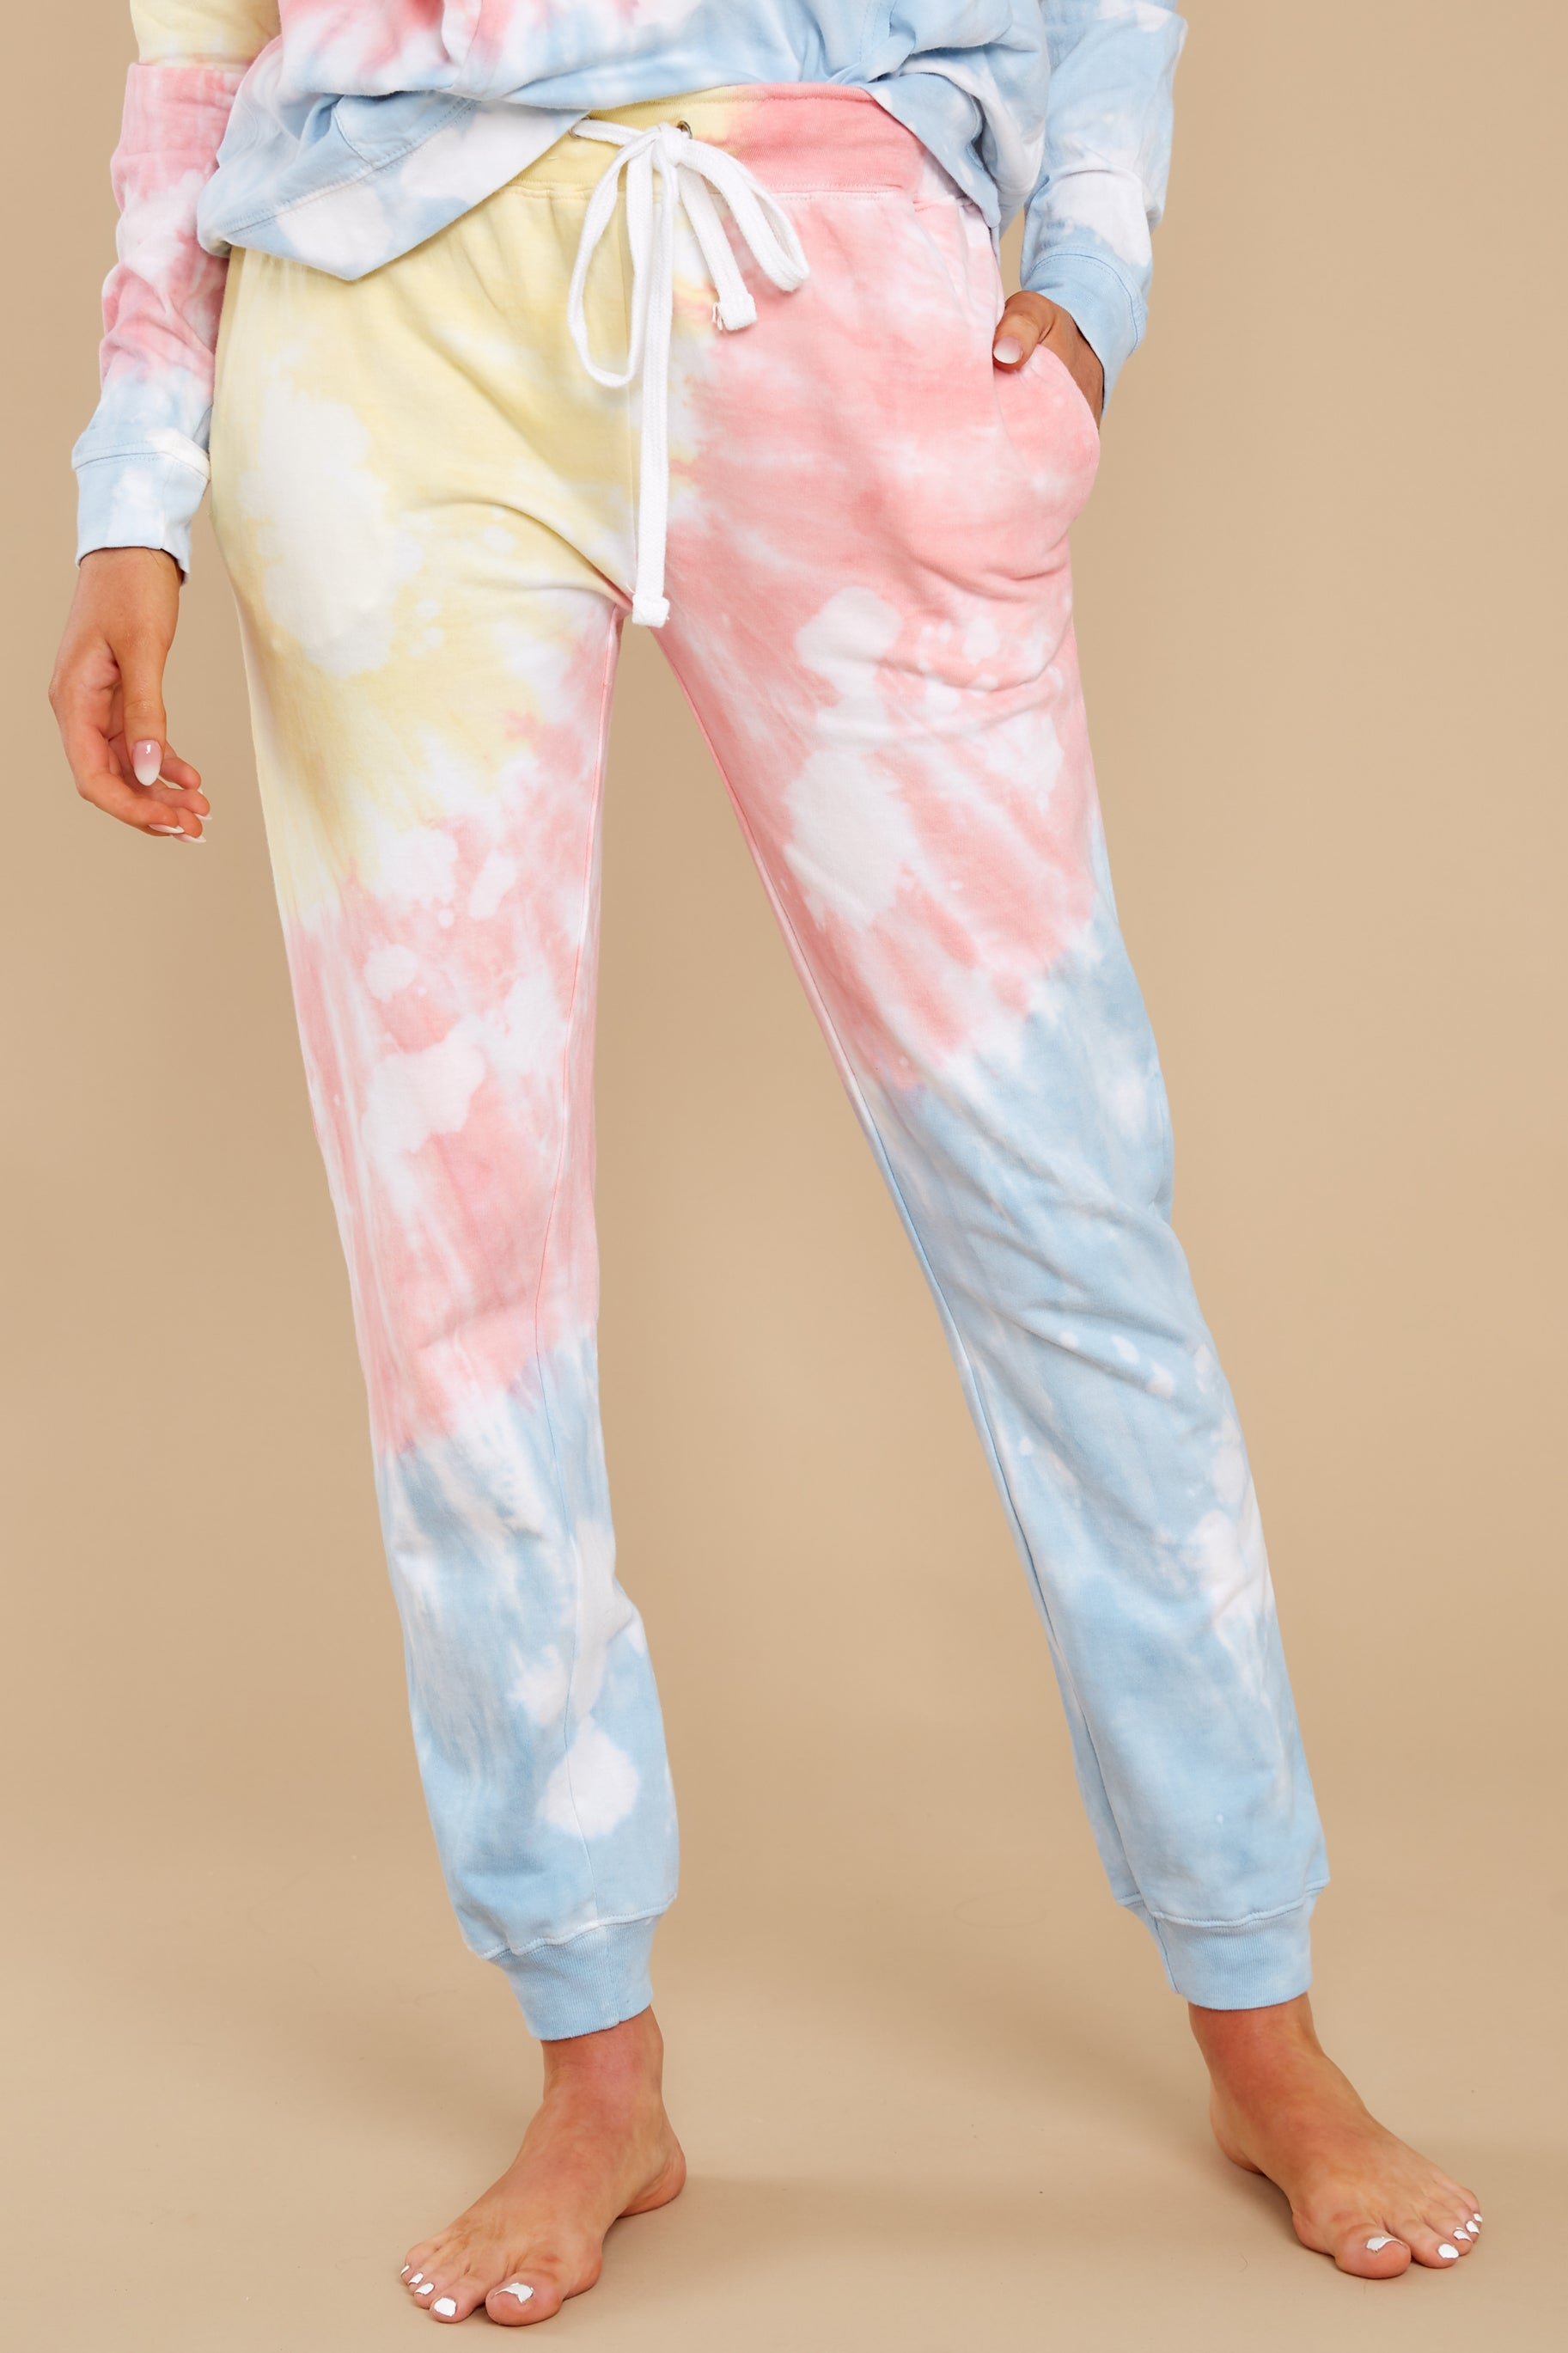 1980s Clothing, Fashion | 80s Style Clothes Totally Worth It Sky Blossom Tie Dye Jogger Pants Orange $28.00 AT vintagedancer.com